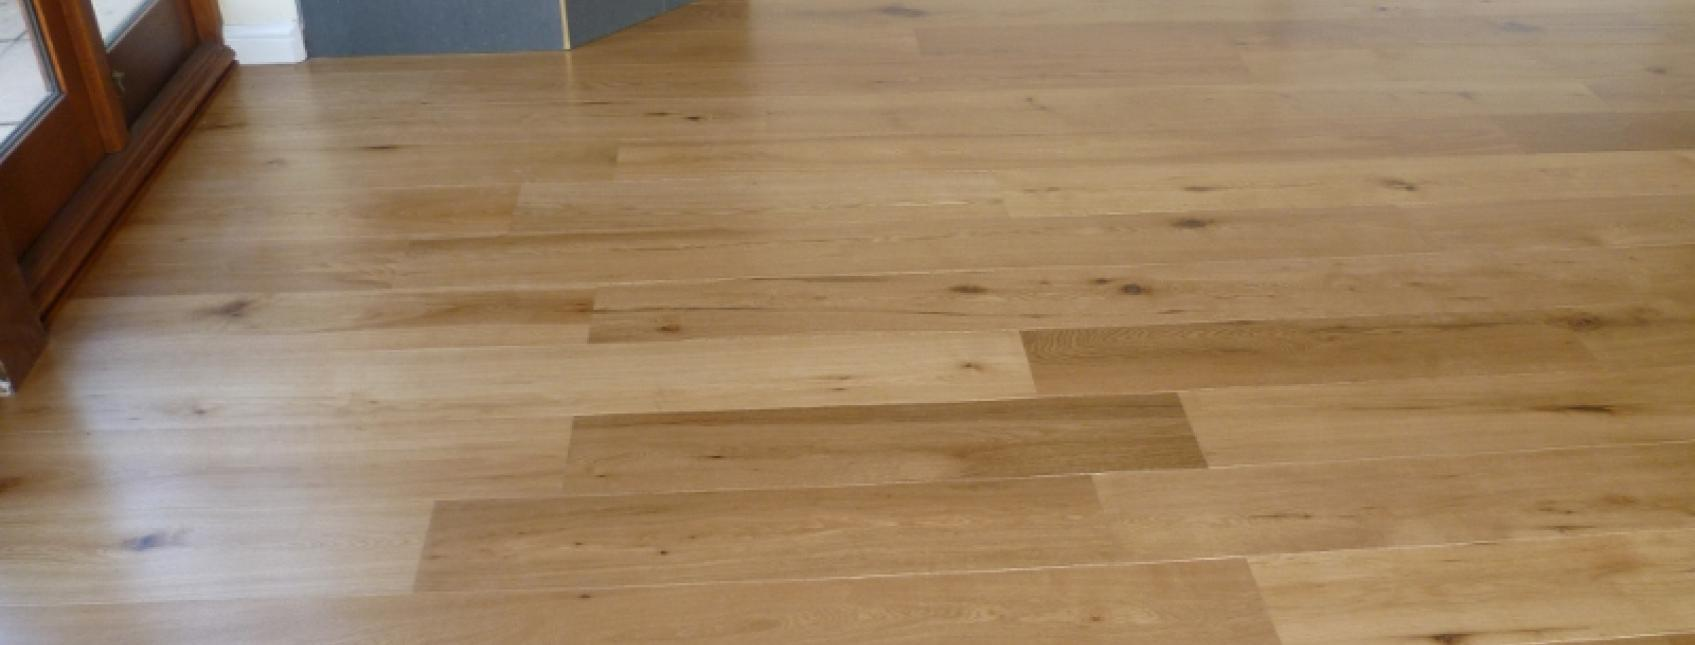 natural oak finish on clear wax